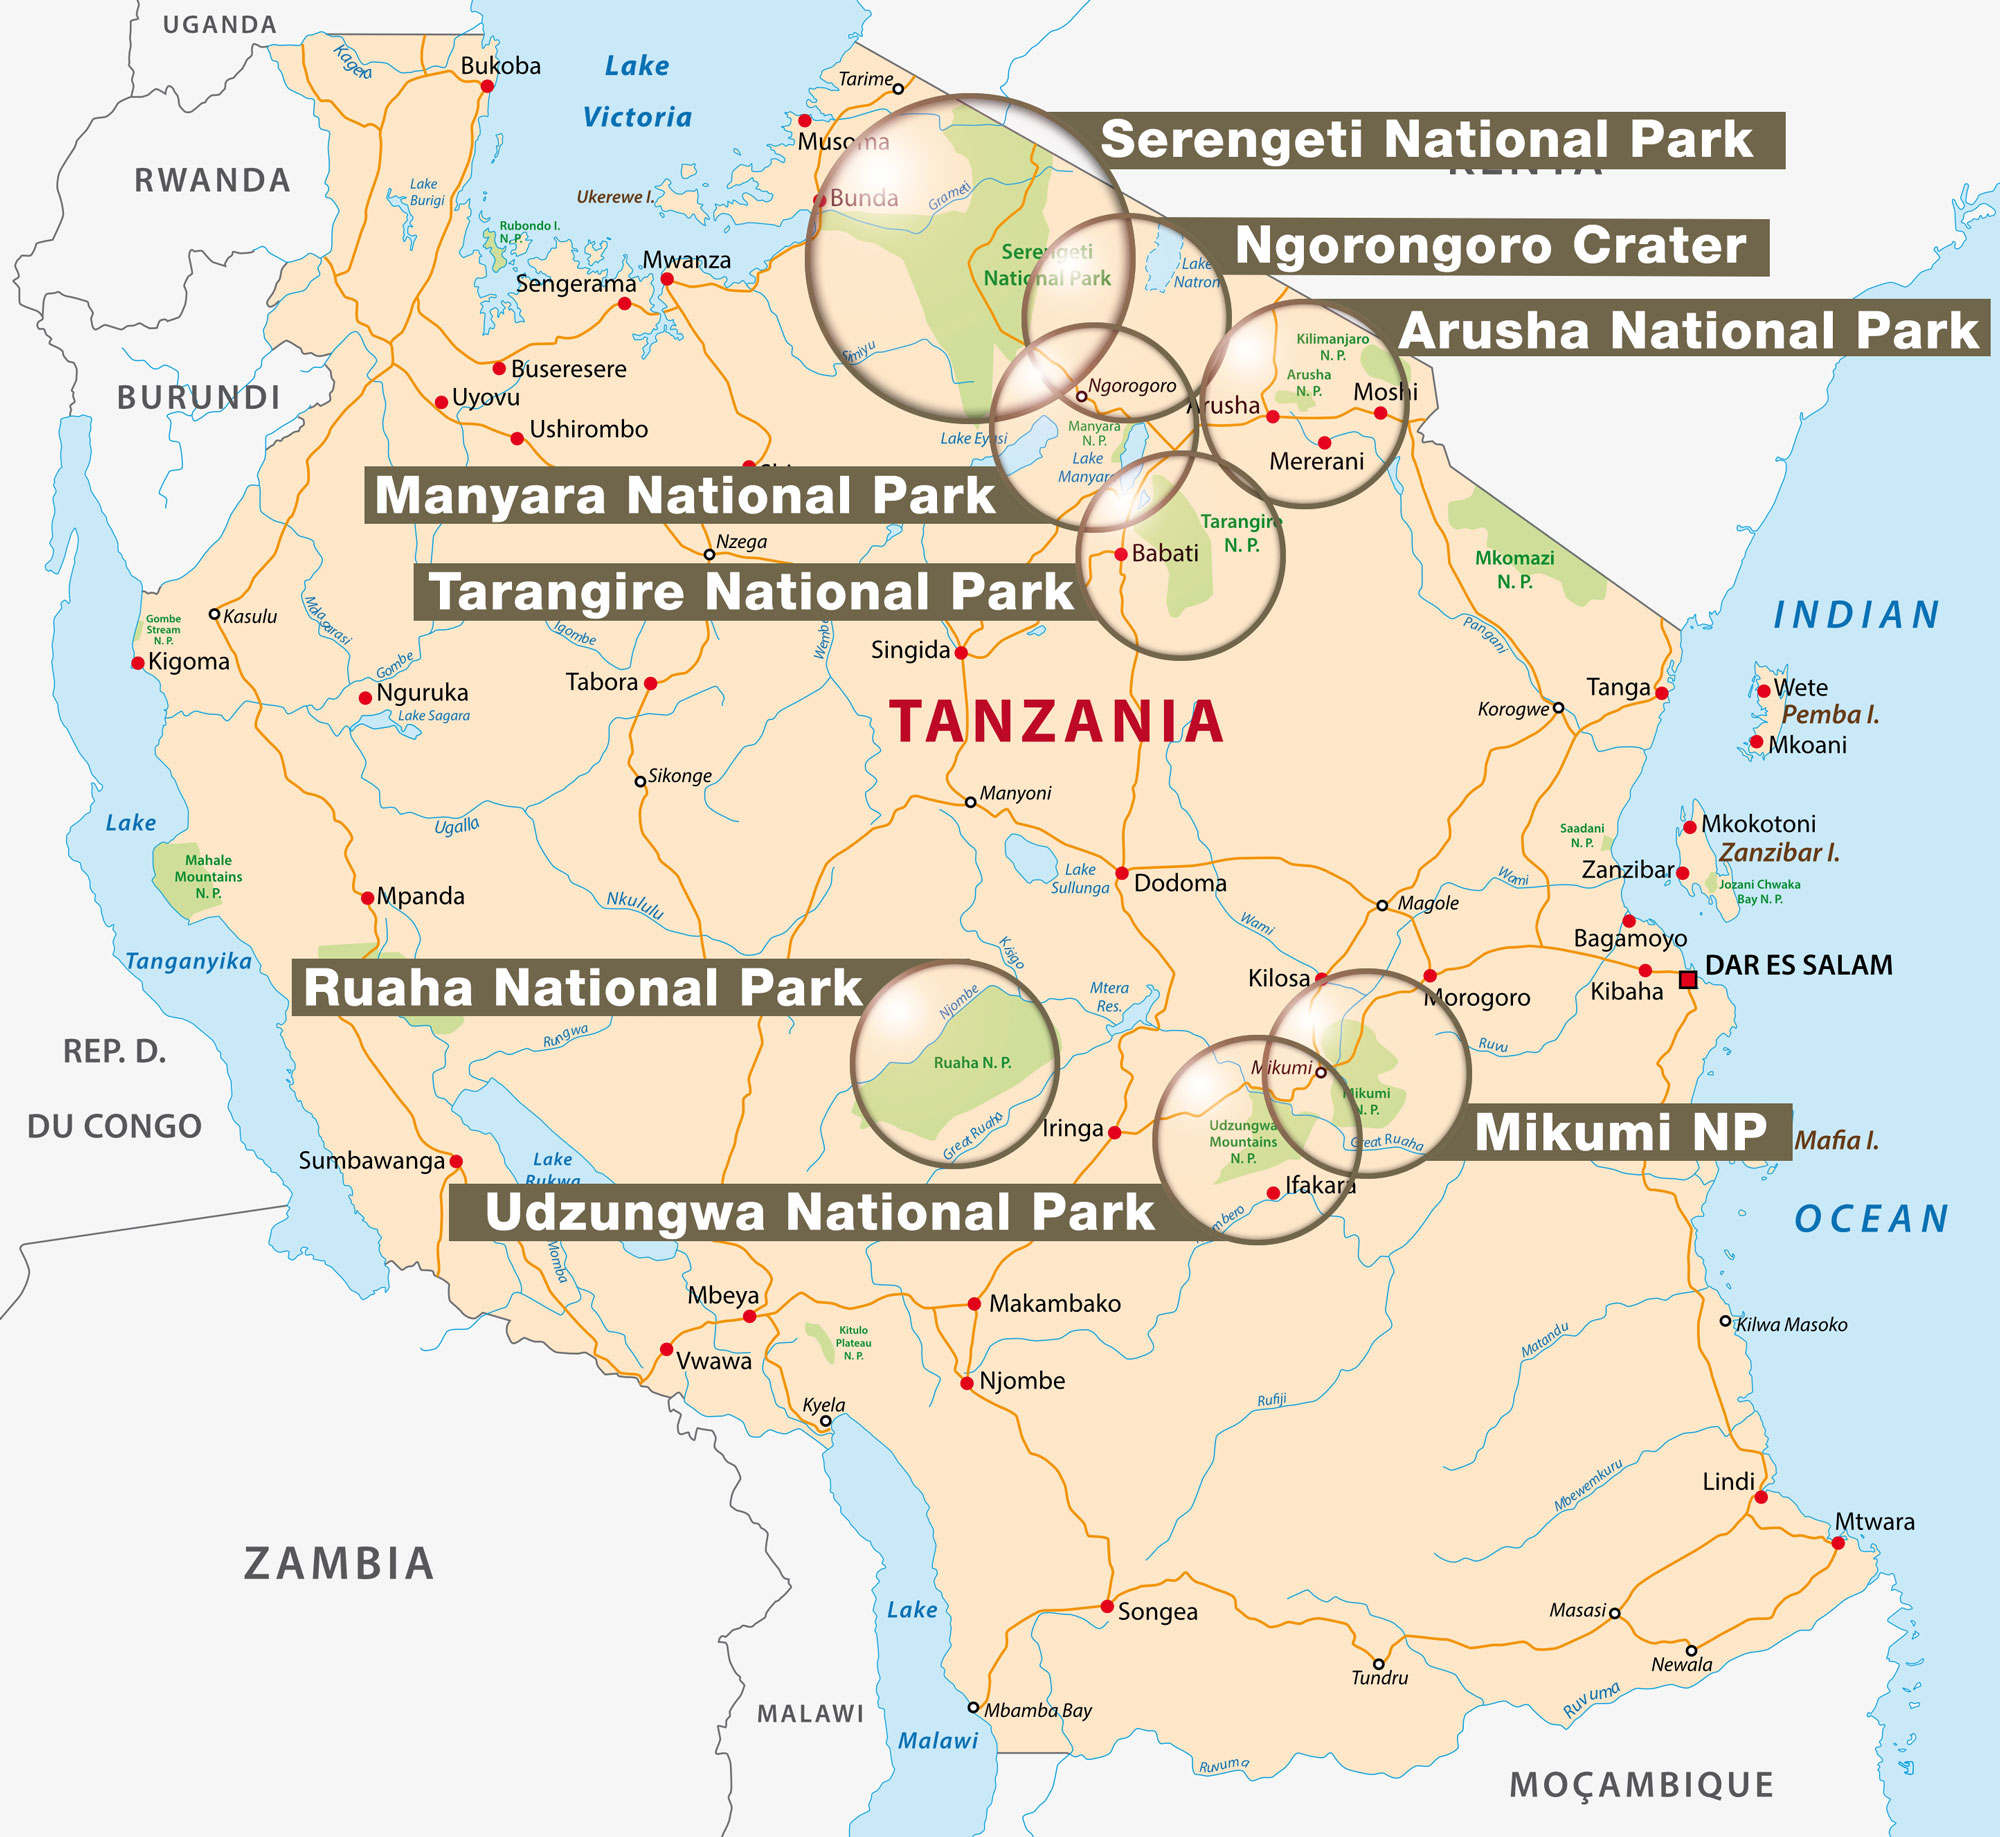 Impressions of the national parks and wild reserves in Tanzania